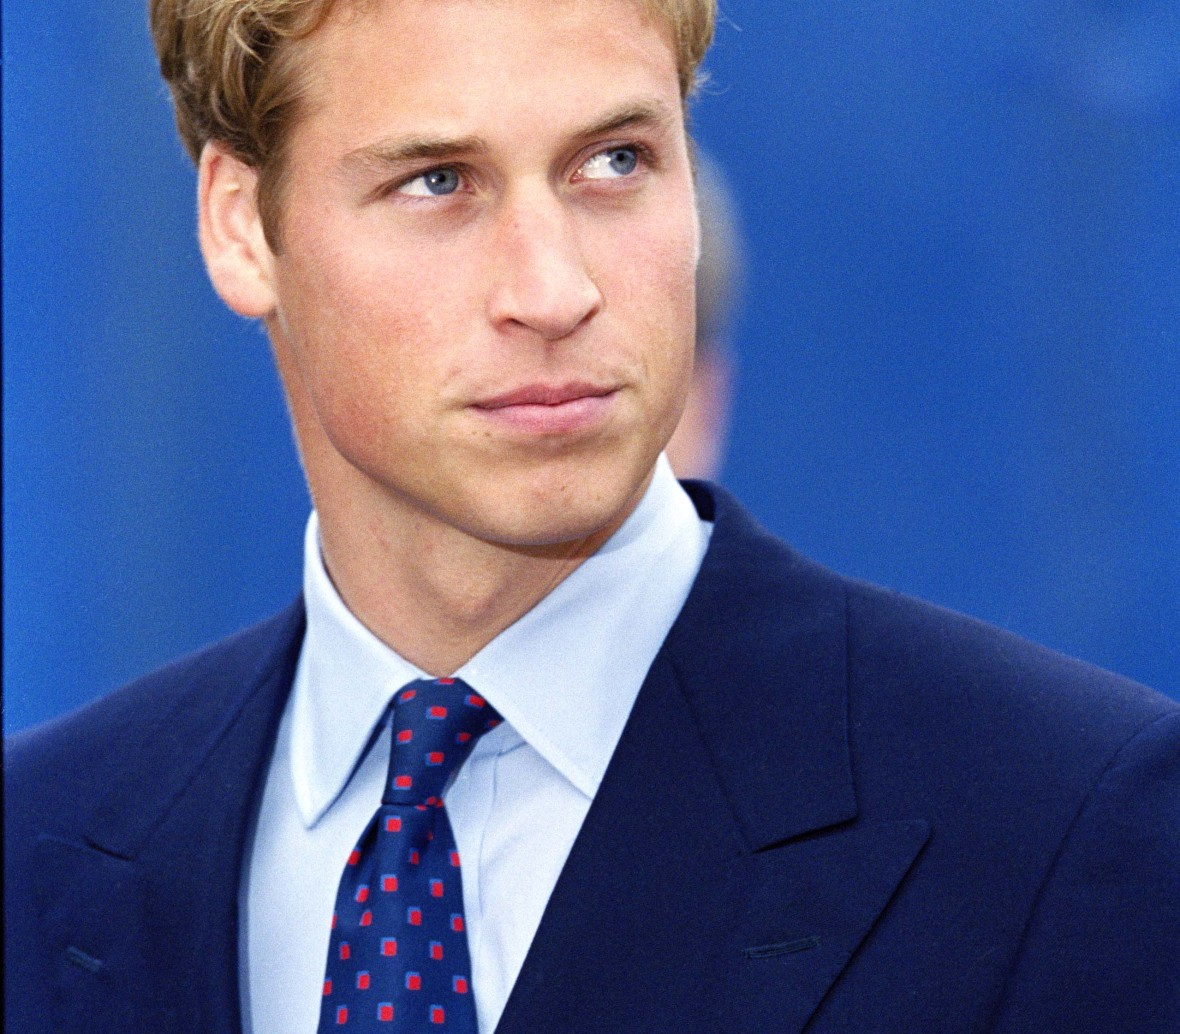 prince william 2001 - getty